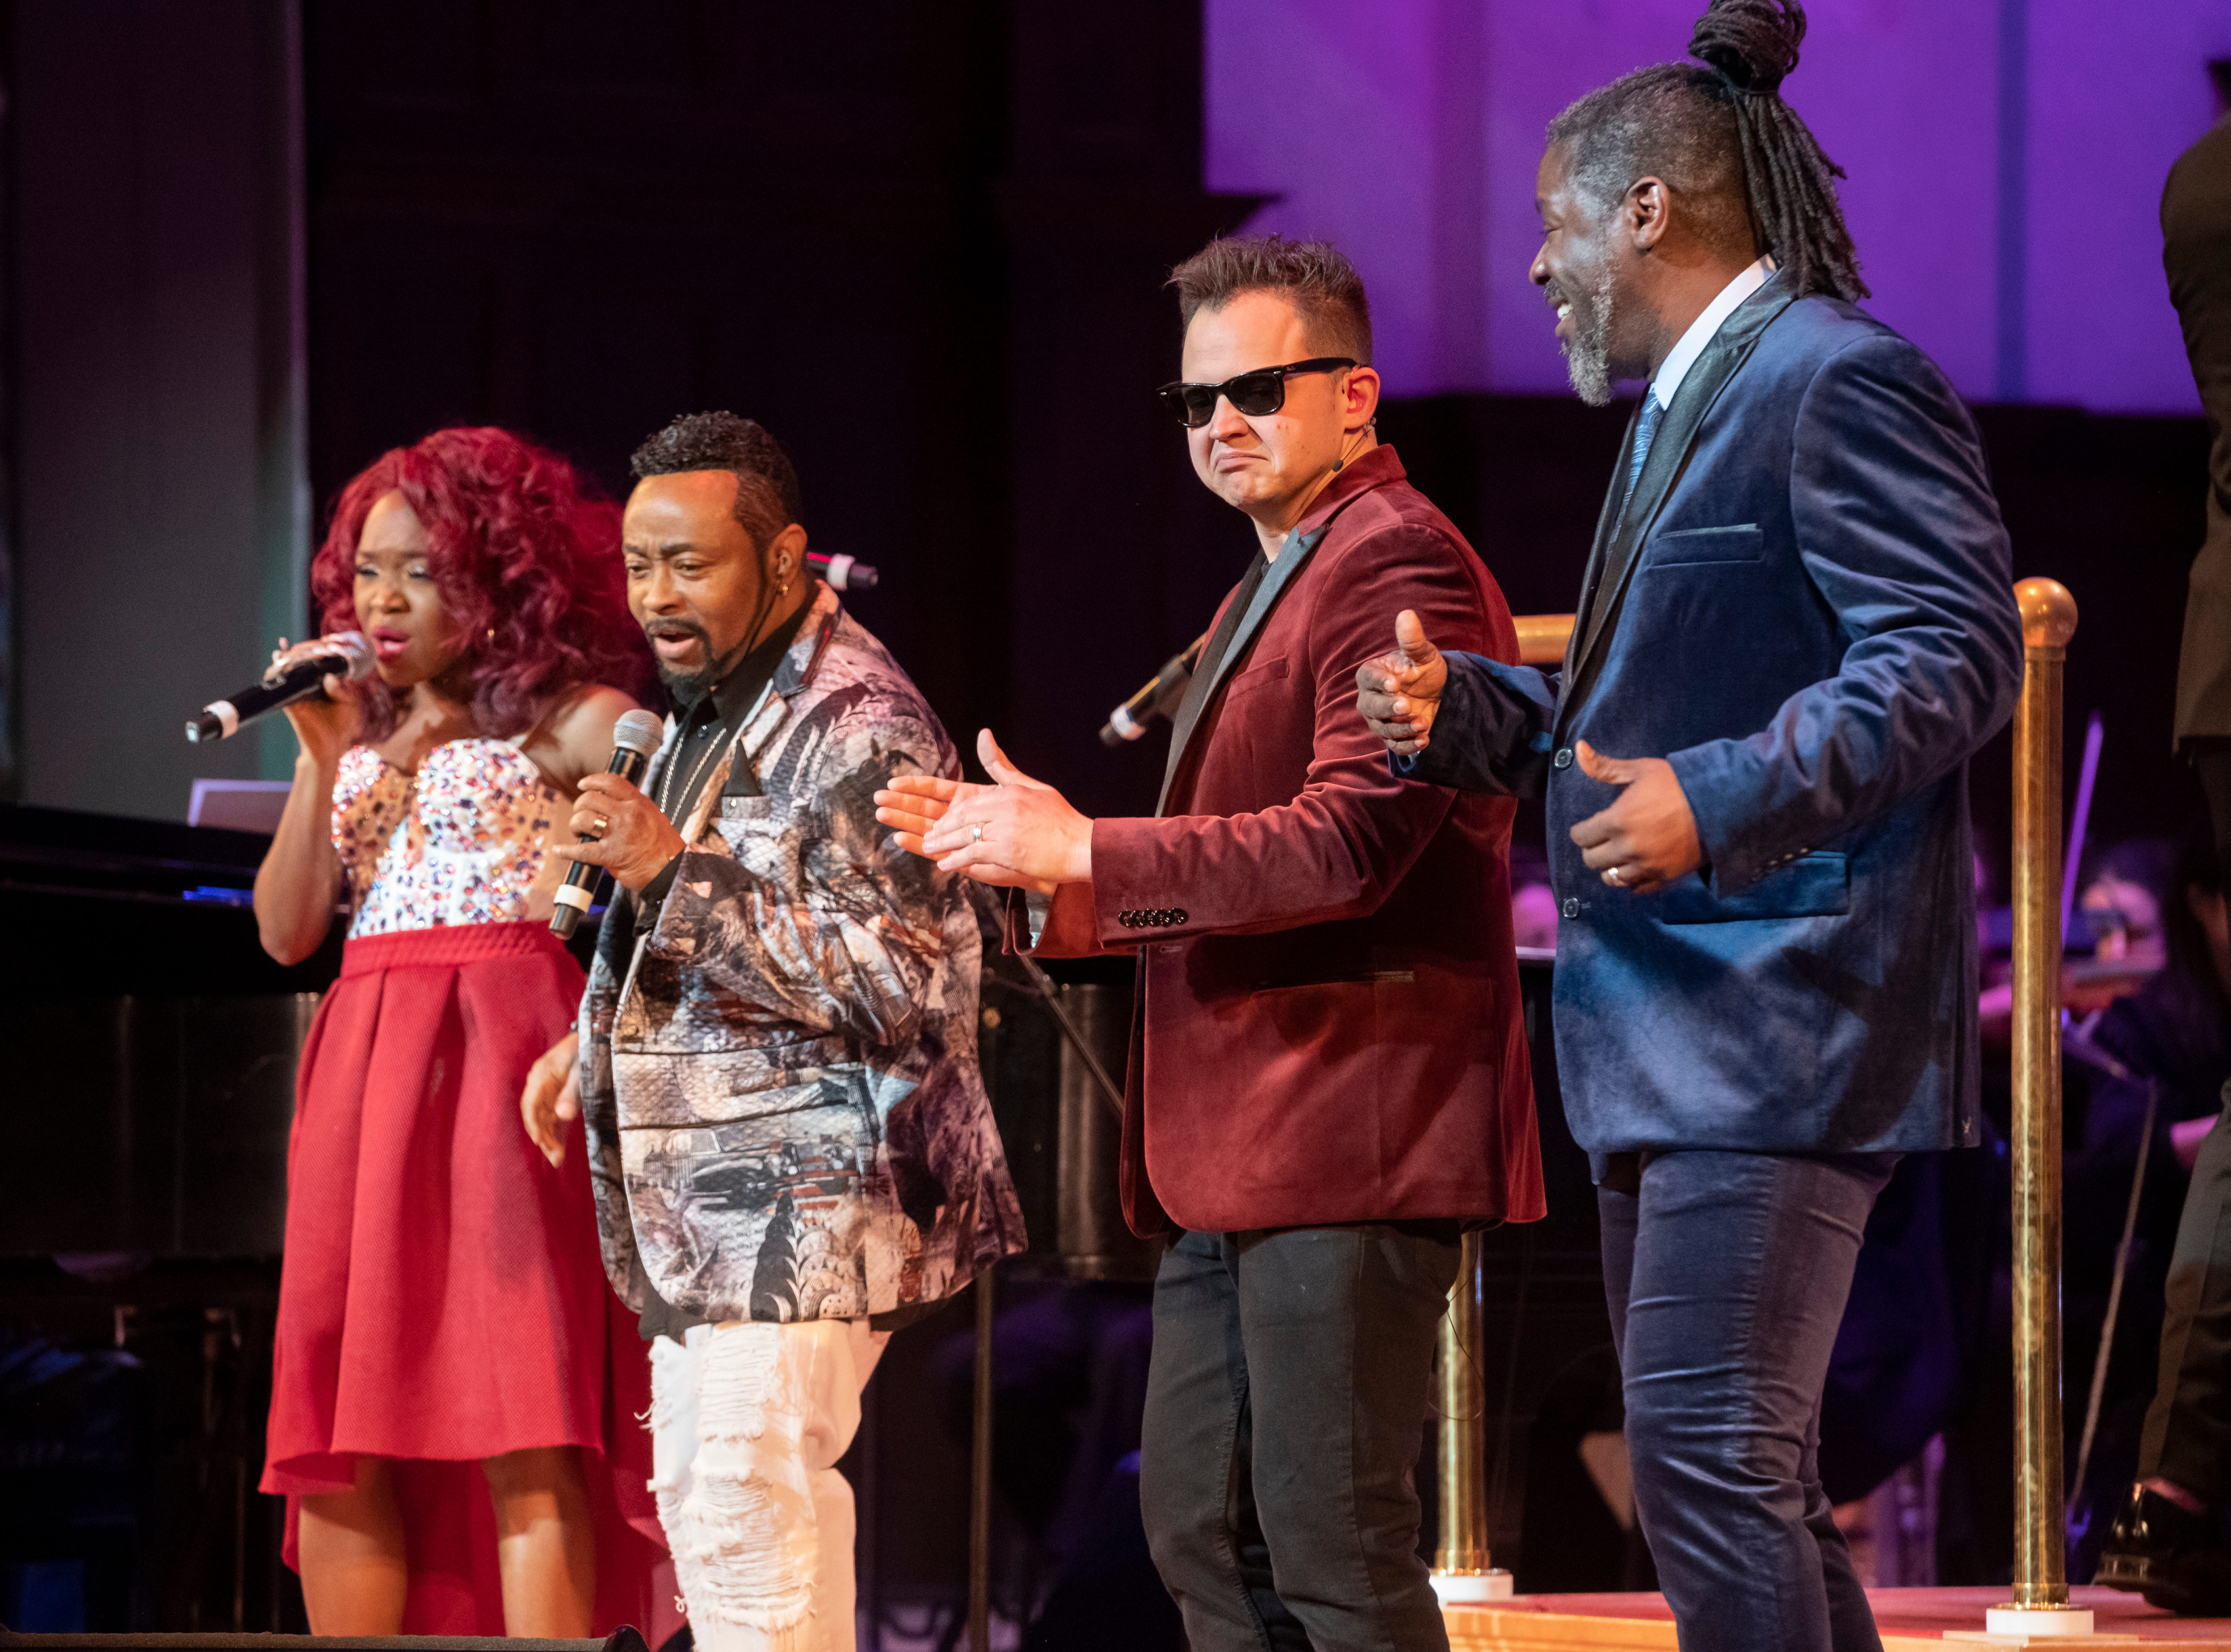 """(From left) Singers Cherri Black, and Condido Lomax perform with ASL performers Sean Forbes and Warren """"Wawa"""" Snipe during the Deaf and Loud Symphonic Experience at the Detroit Symphony Orchestra."""